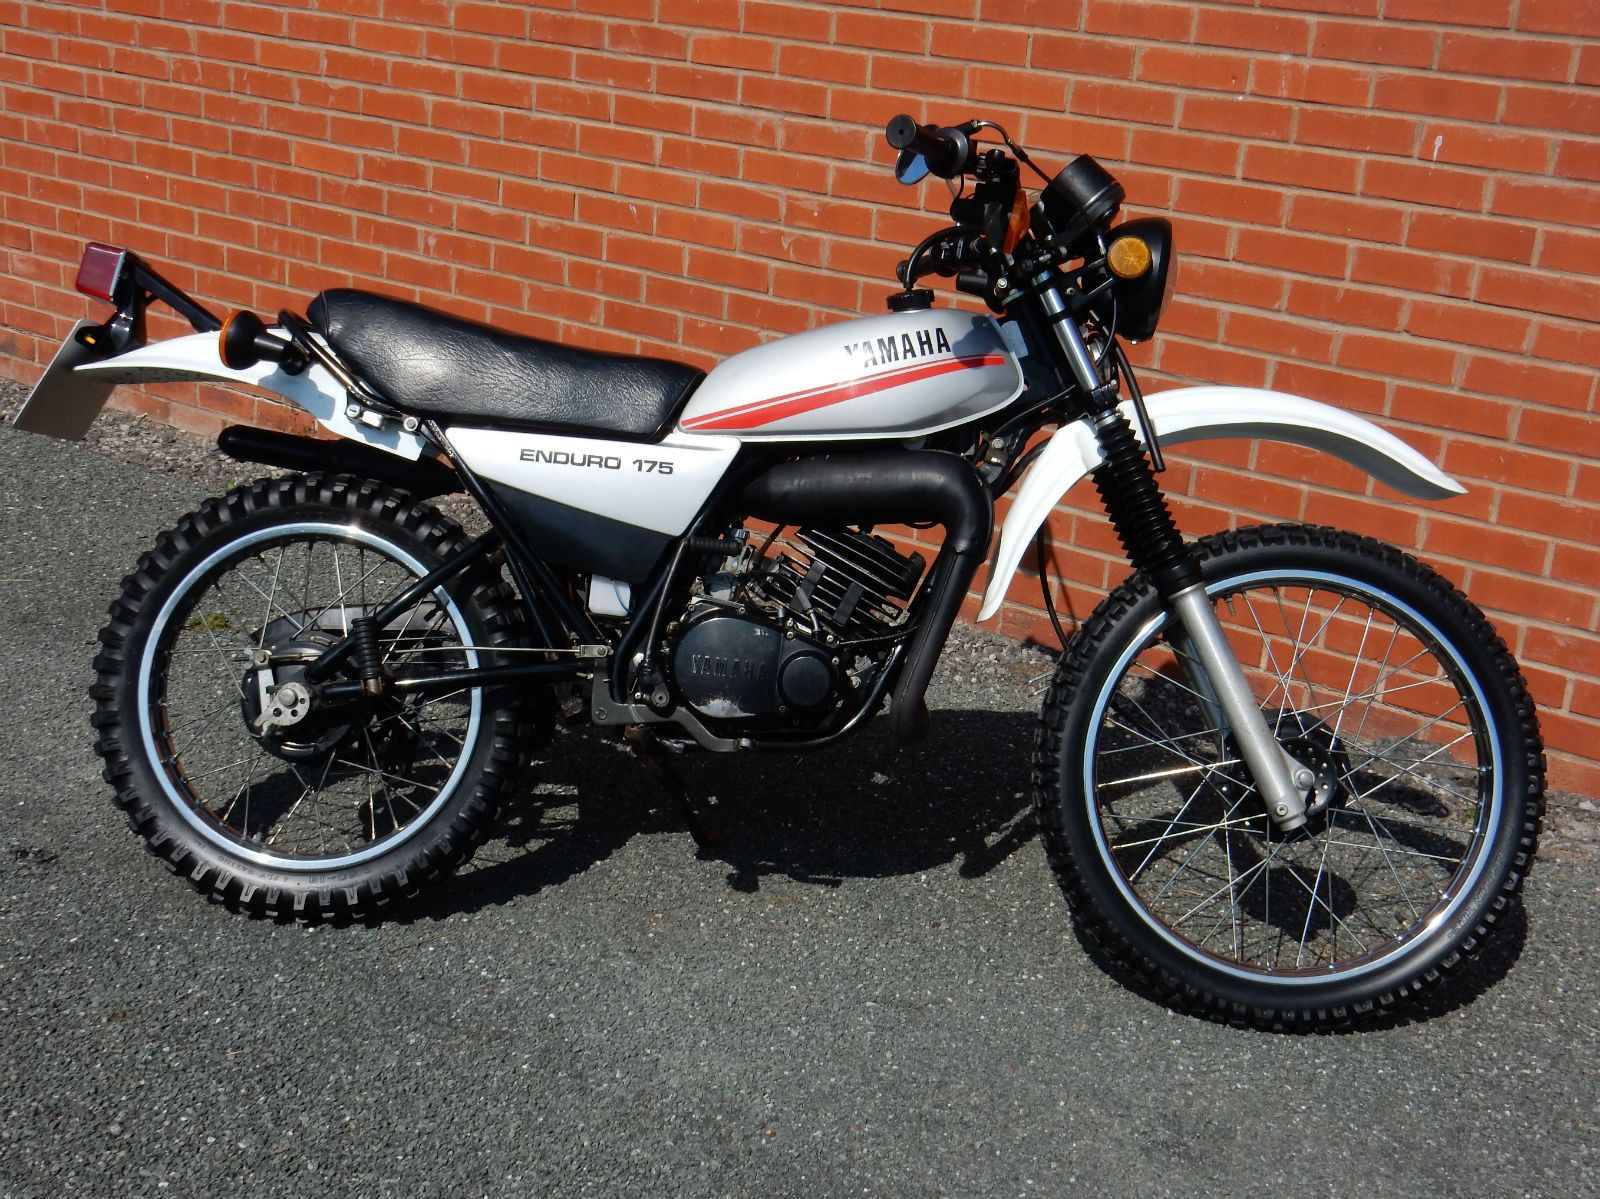 yamaha dt 175 enduro 1979 171cc matching nos uk bike mot 39 d july 2017 yamaha. Black Bedroom Furniture Sets. Home Design Ideas